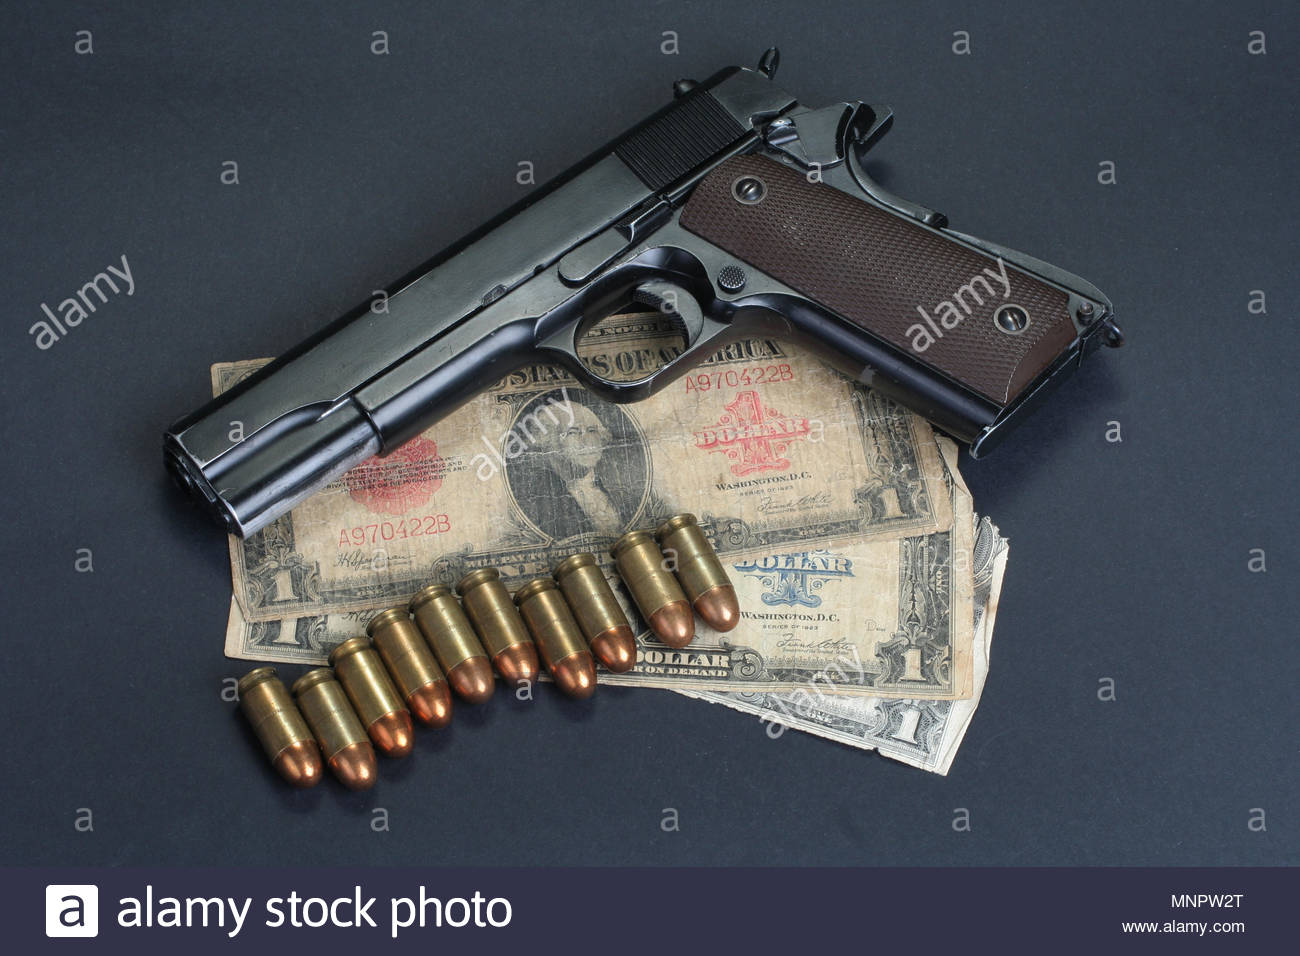 colt goverment M1911 on black background Stock Photo 185514080 1300x956